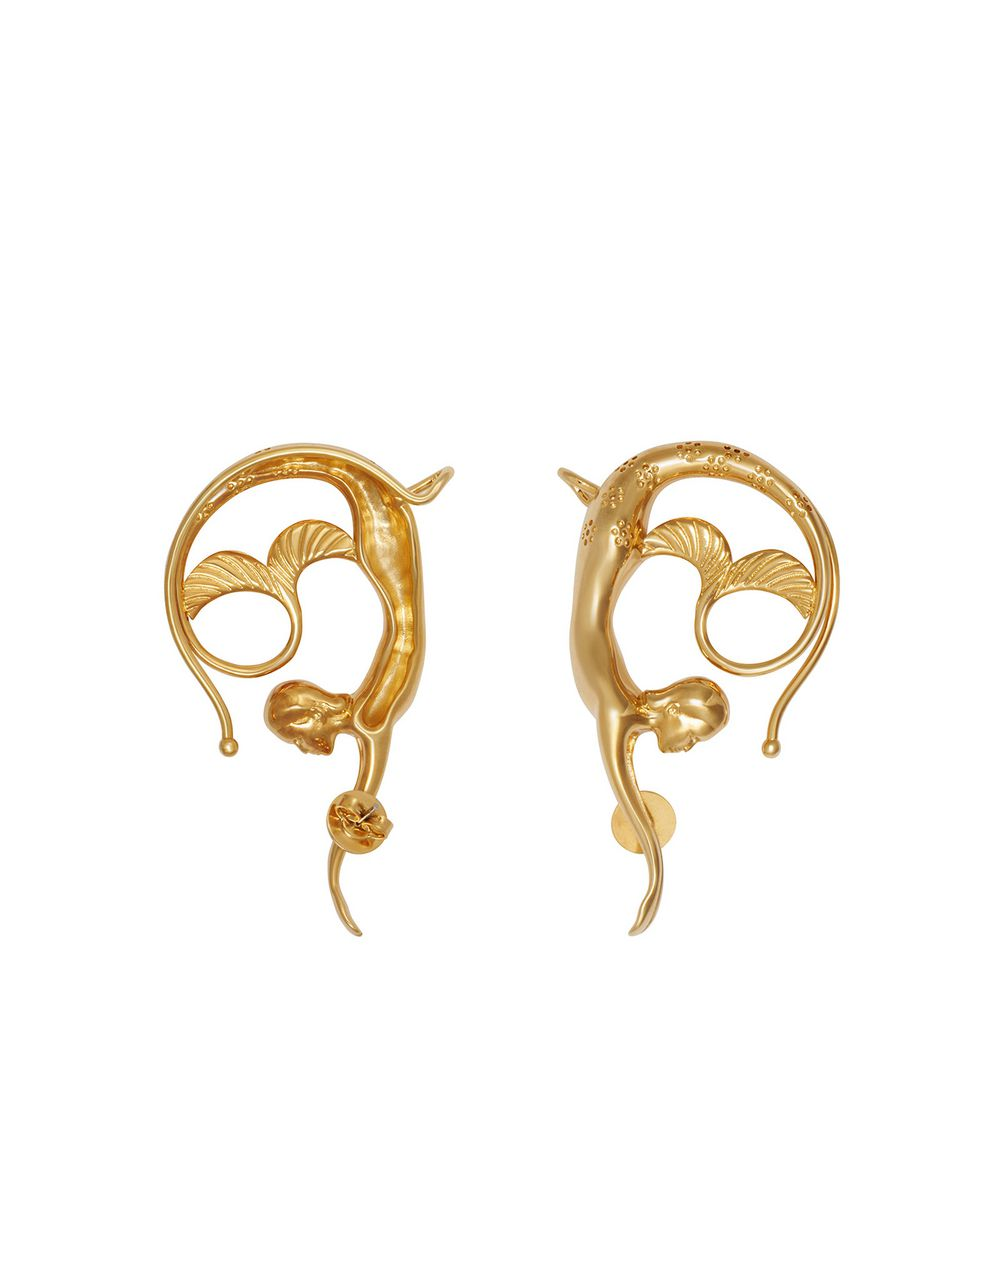 MERMAID EARRINGS - Lanvin